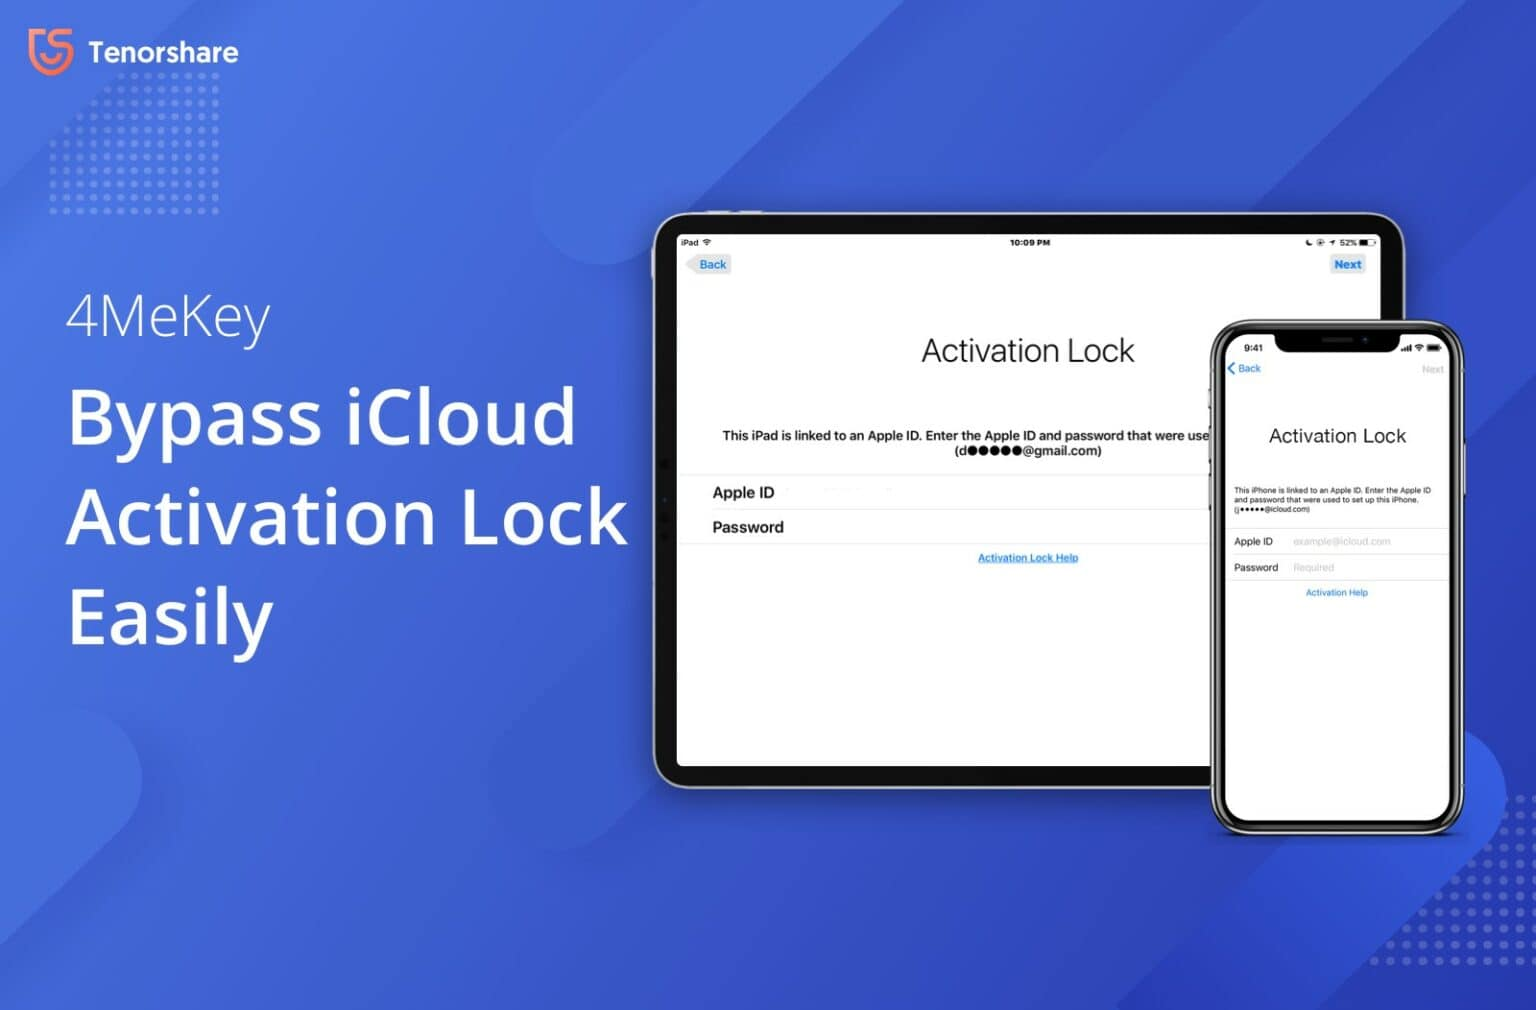 Tenorshare 4MeKey easily bypasses your iOS device's iCloud activation lock.